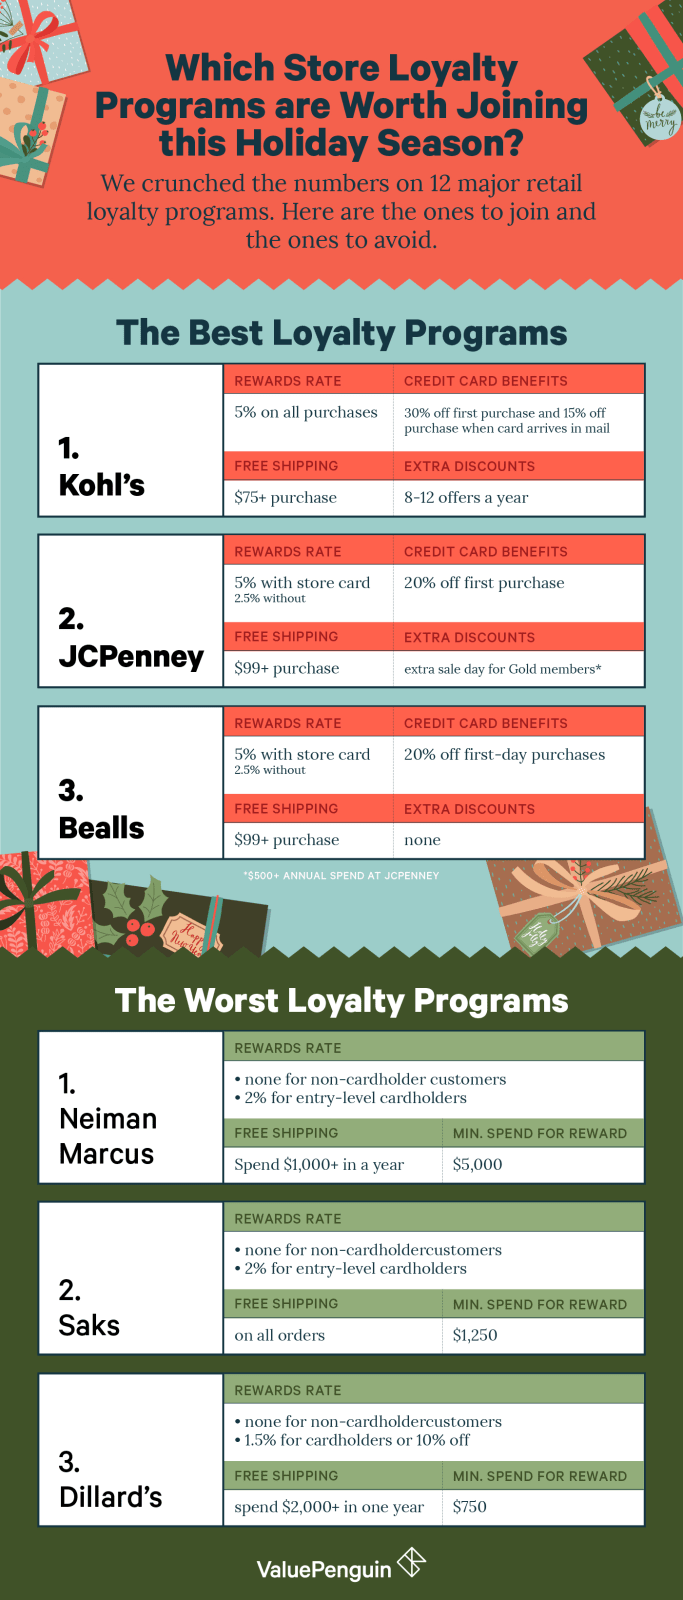 The best and worst shopping loyalty programs